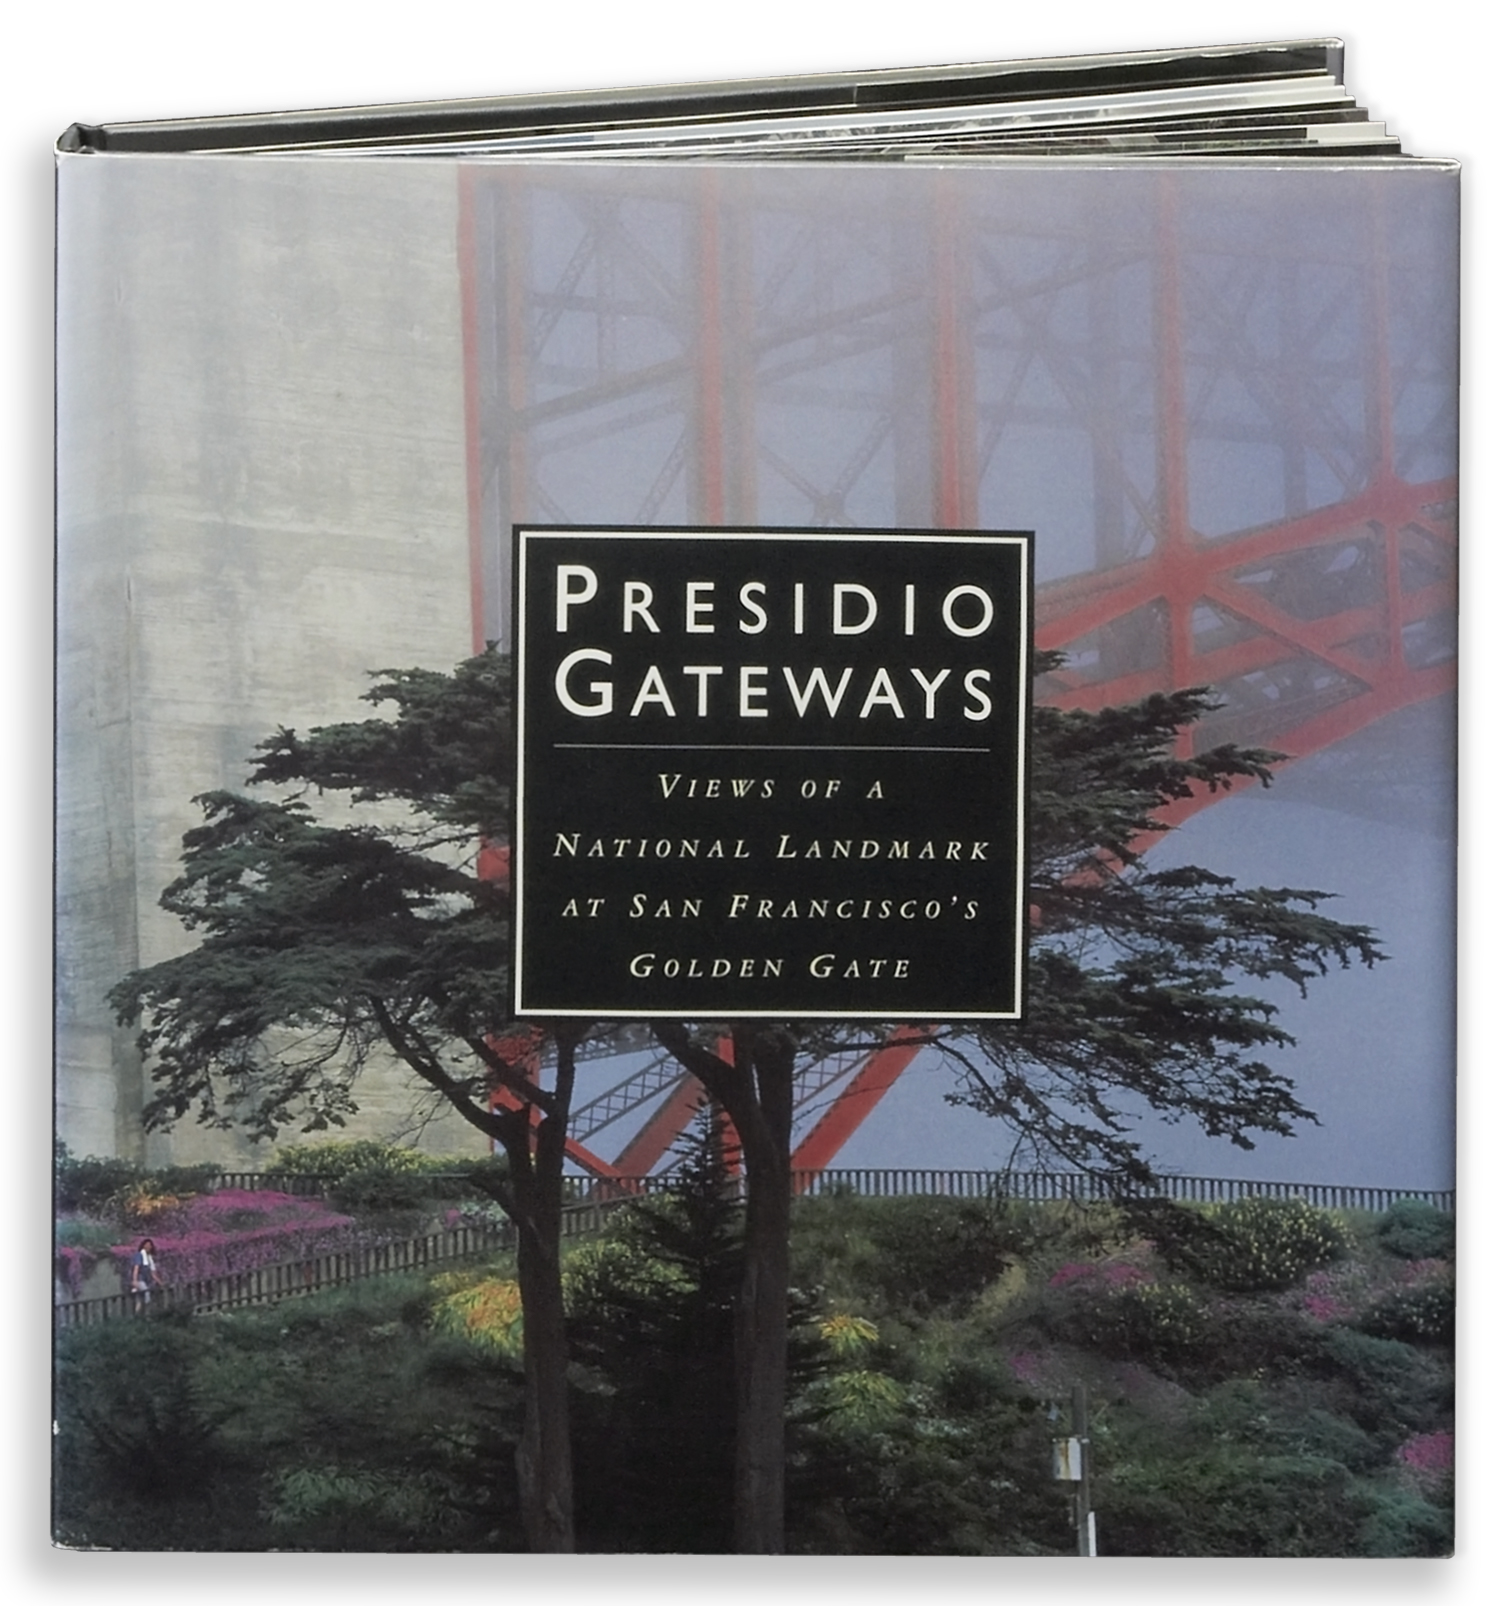 Presidio Gateways: Views of a National Landmark at San Francisco's Golden Gate